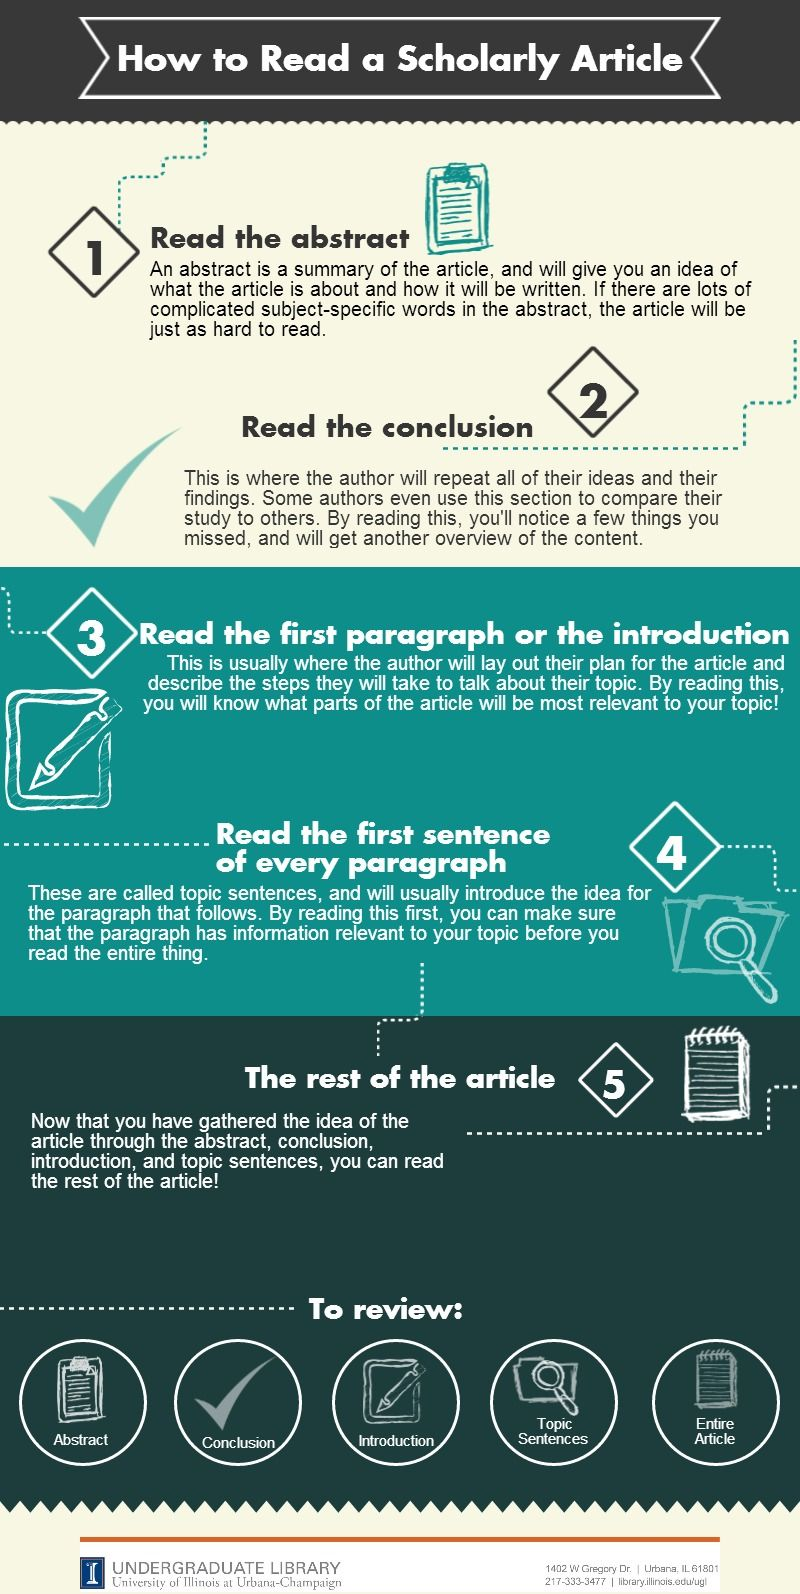 how to read scholarly articles